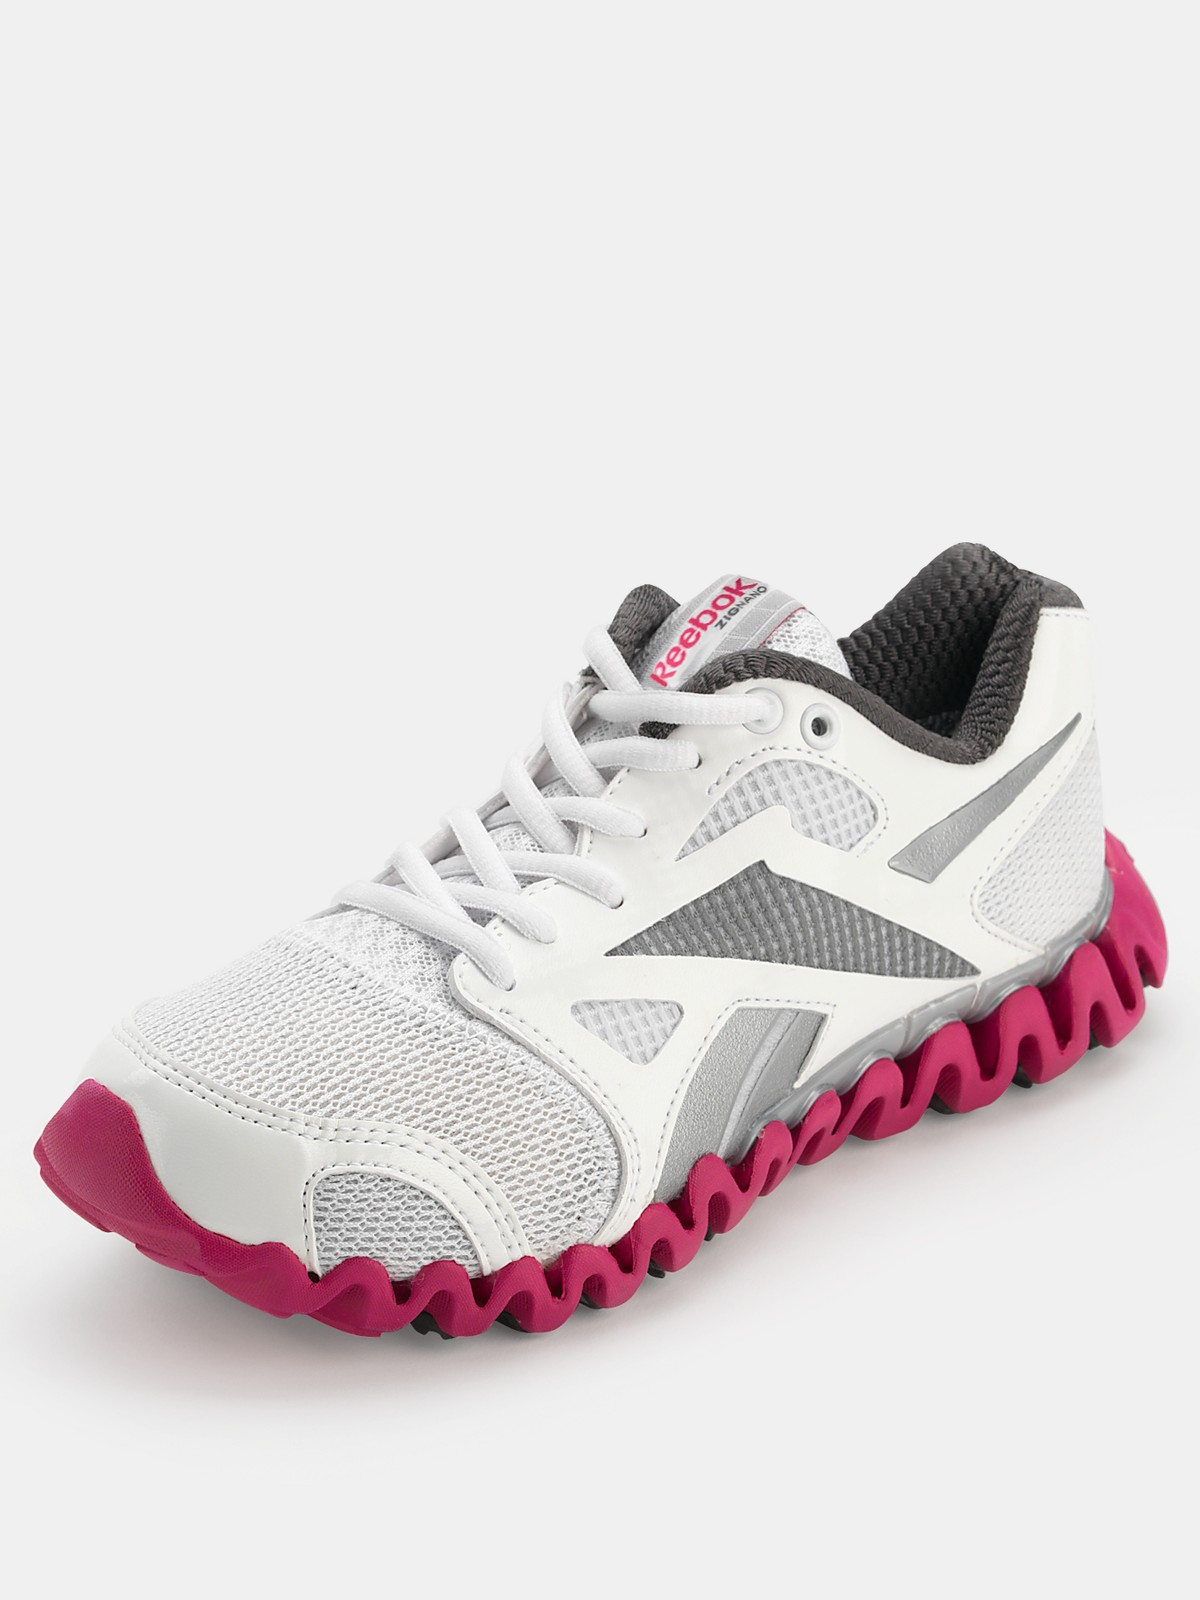 reebok zignano fly running shoes in white white grey pink